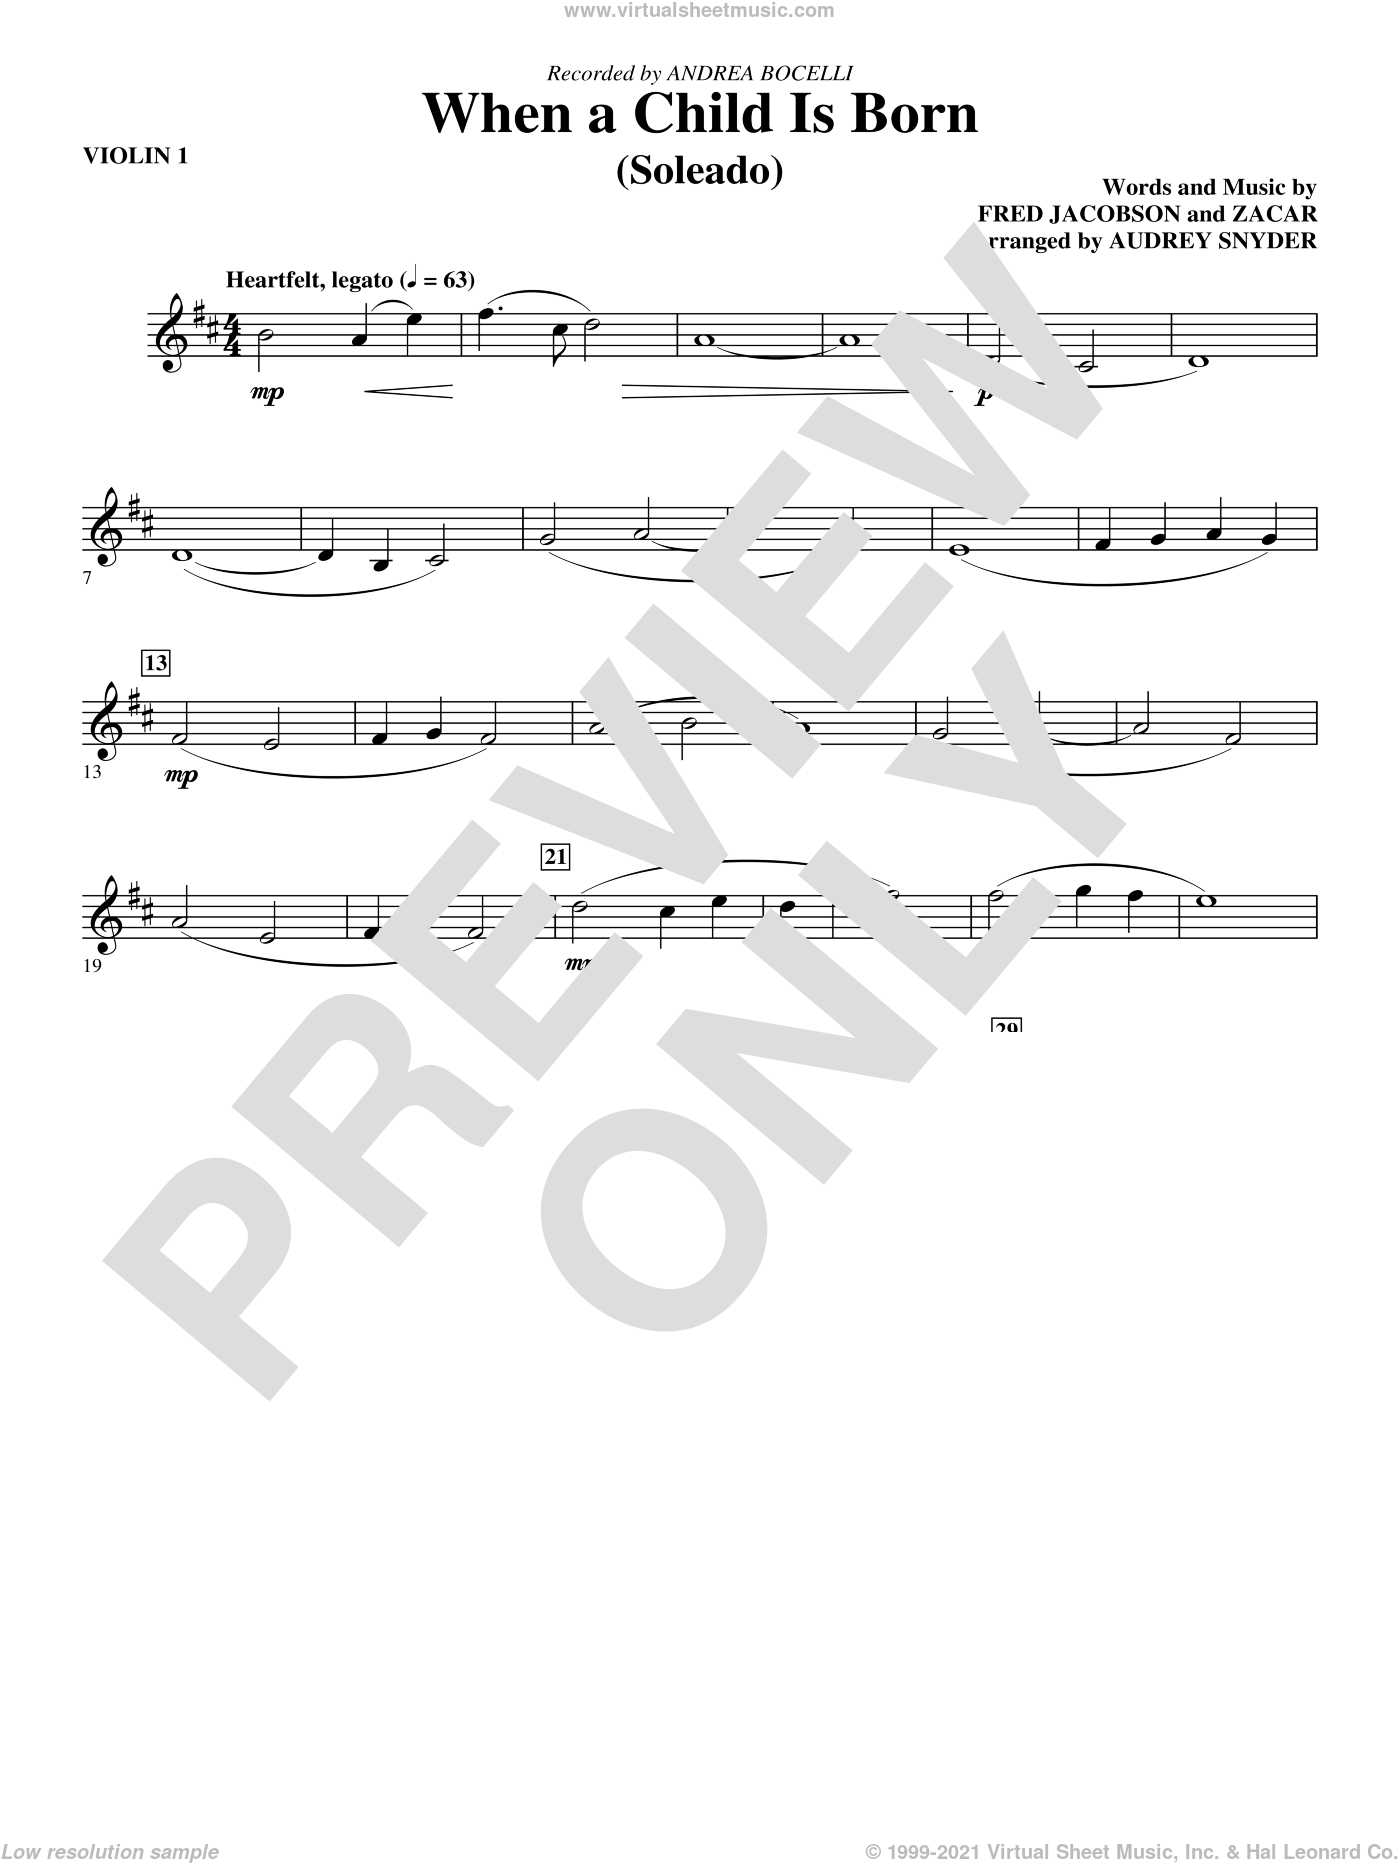 When A Child Is Born (Soleado) sheet music for orchestra/band (violin 1) by Fred Jacobson